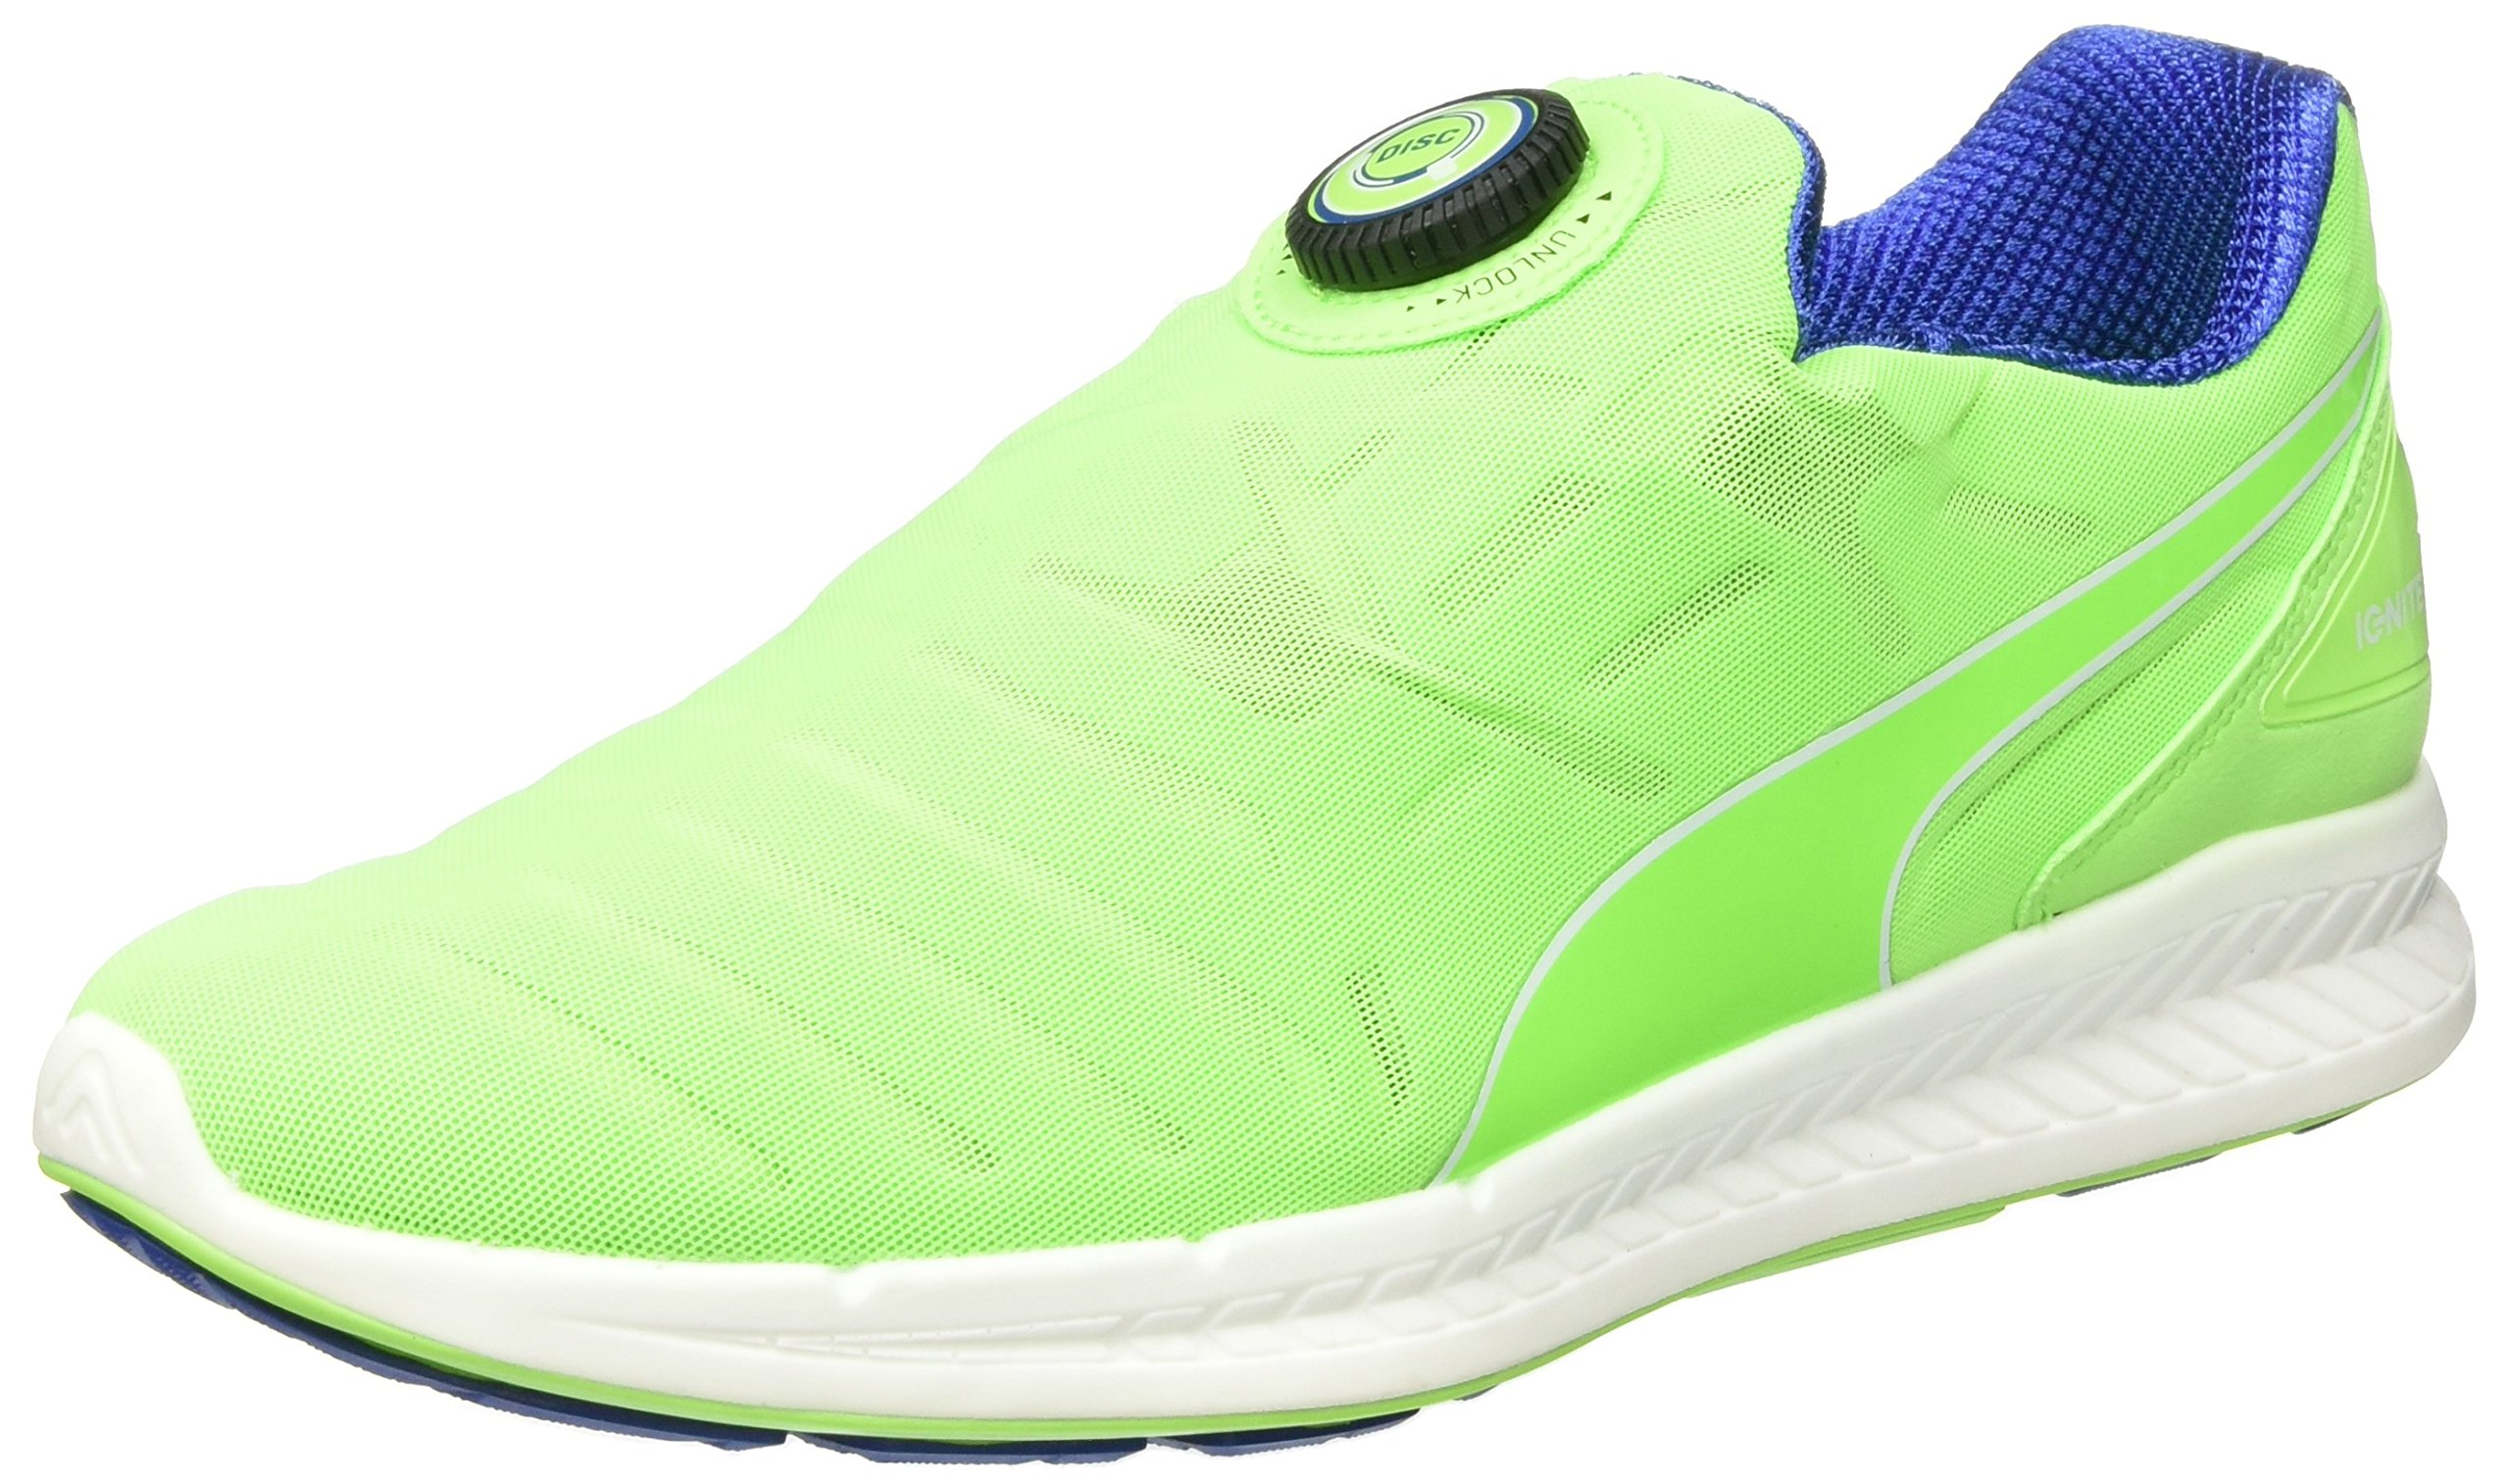 Gecko Eu Course Web surf The De HommeGrüngreen Ignite 0141 DiscChaussures Puma eIY2bWE9HD